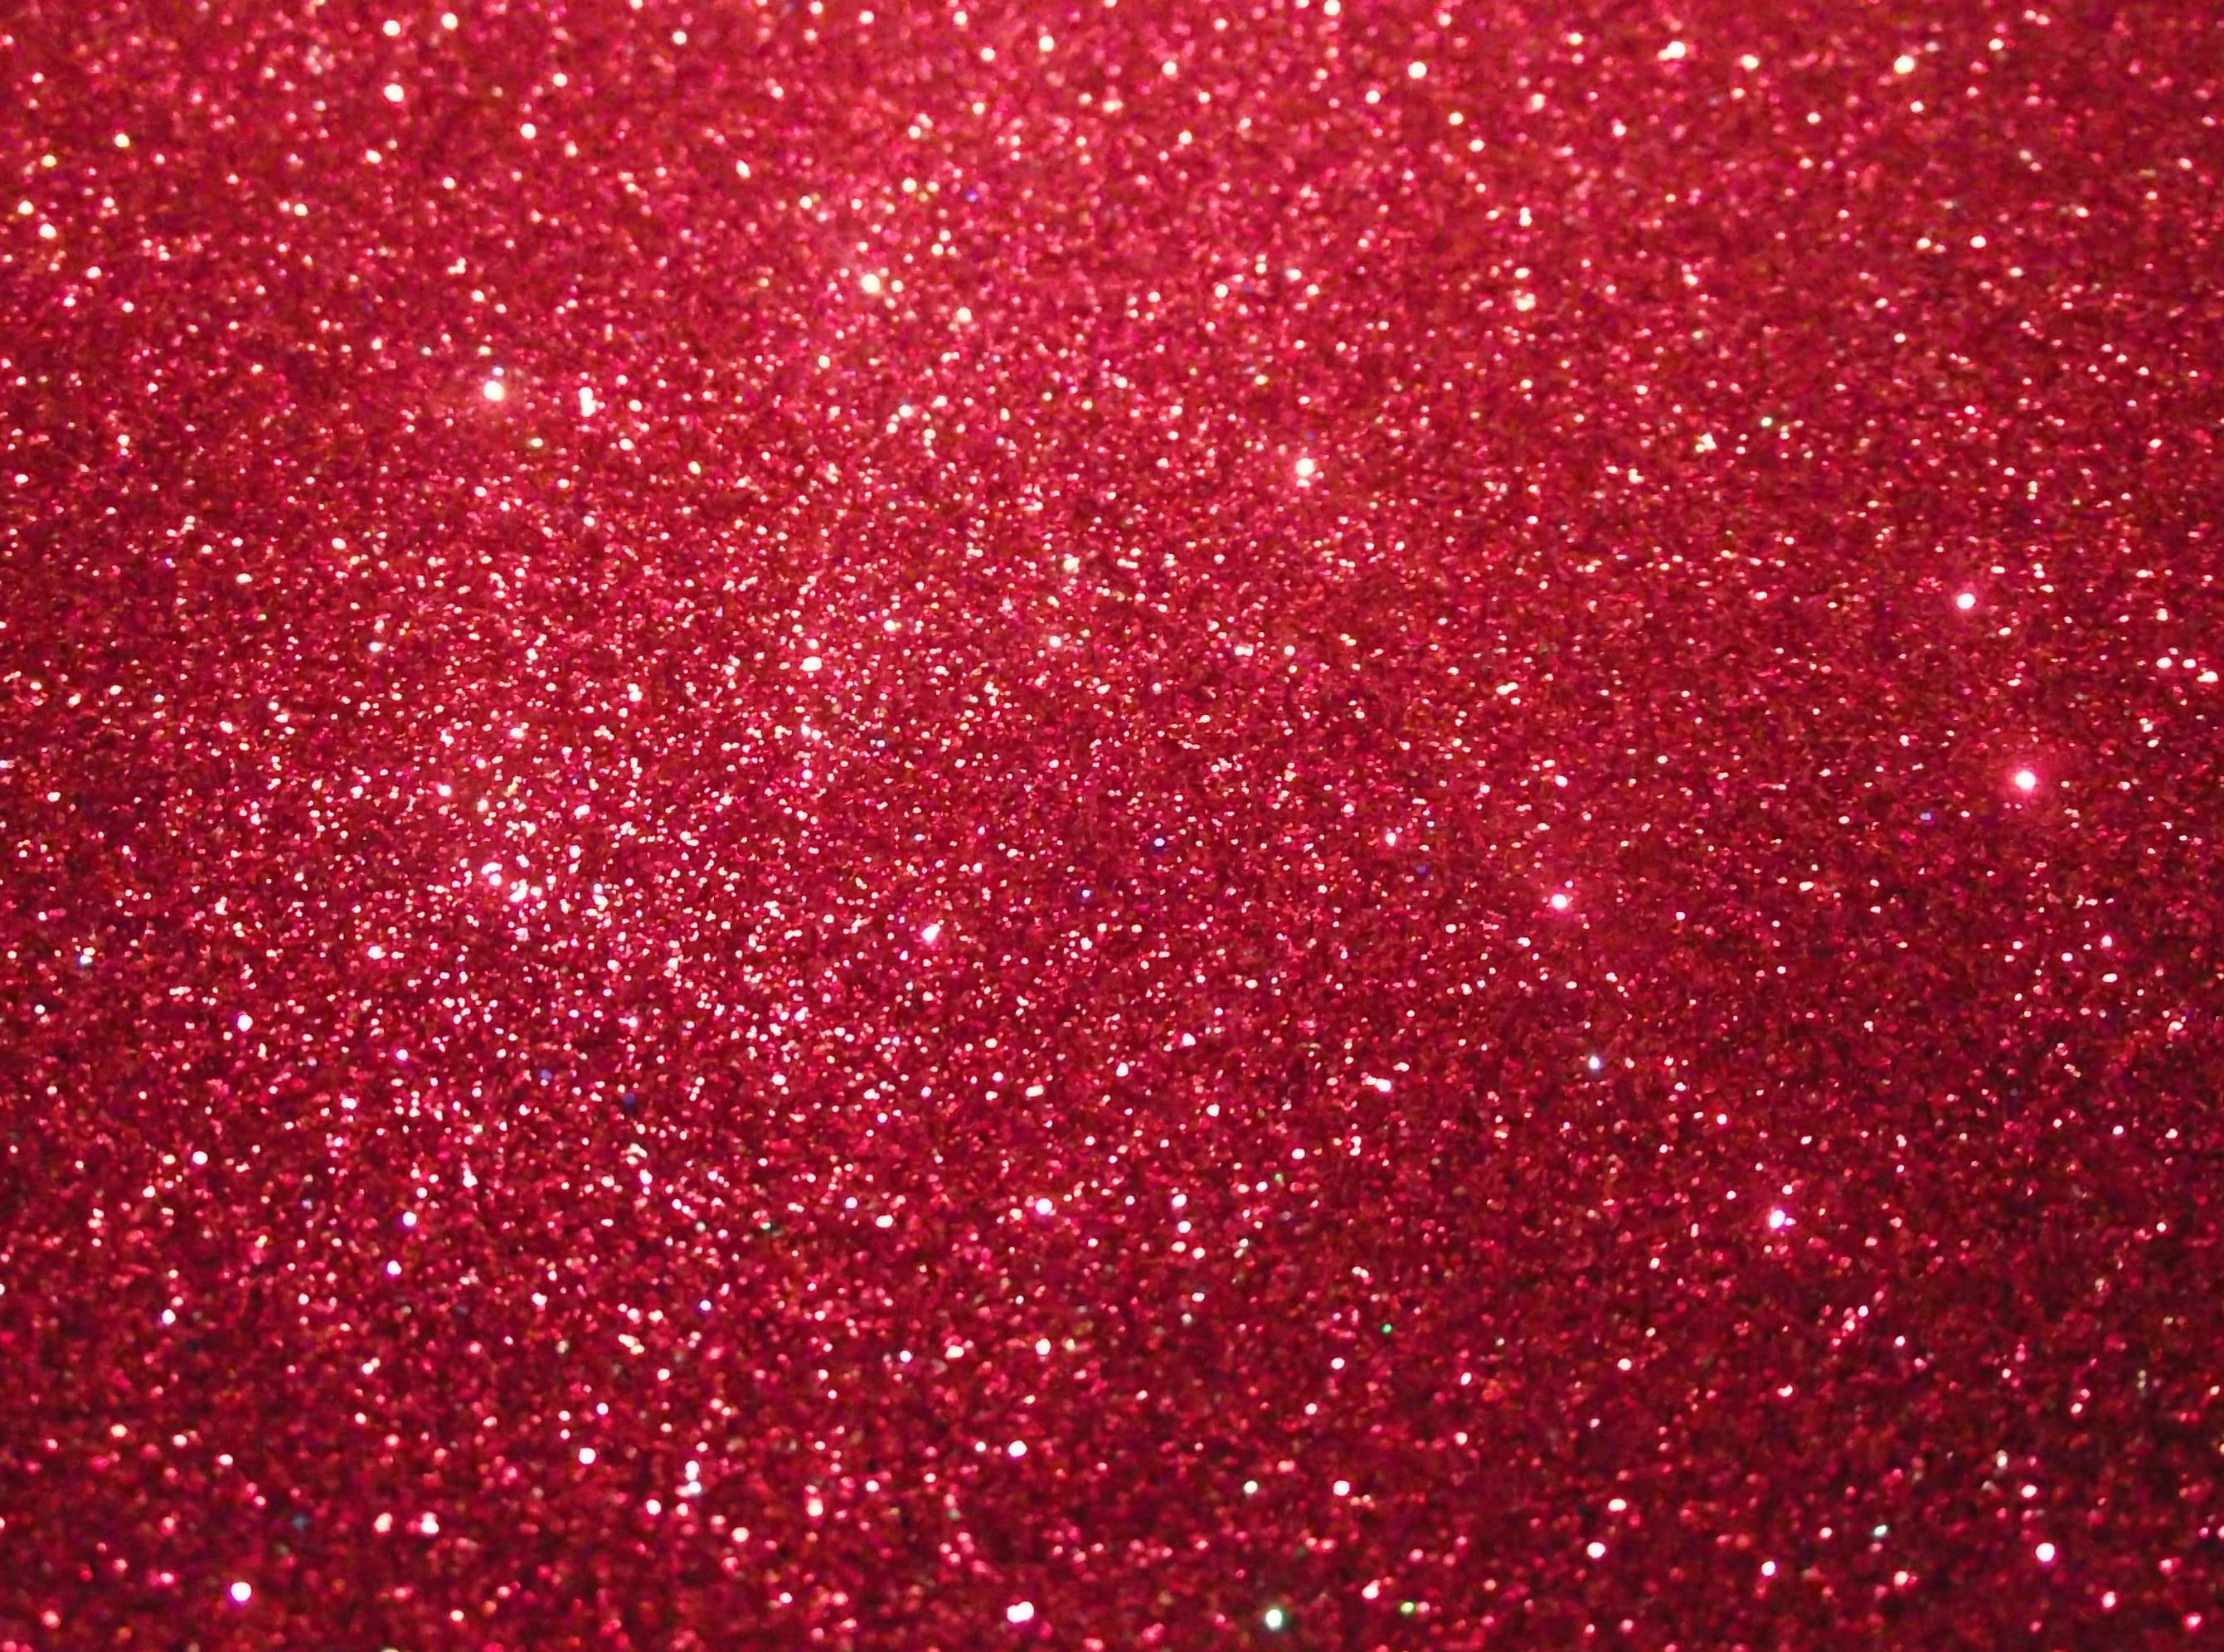 Group Of Glitter Tumblr Backgrounds